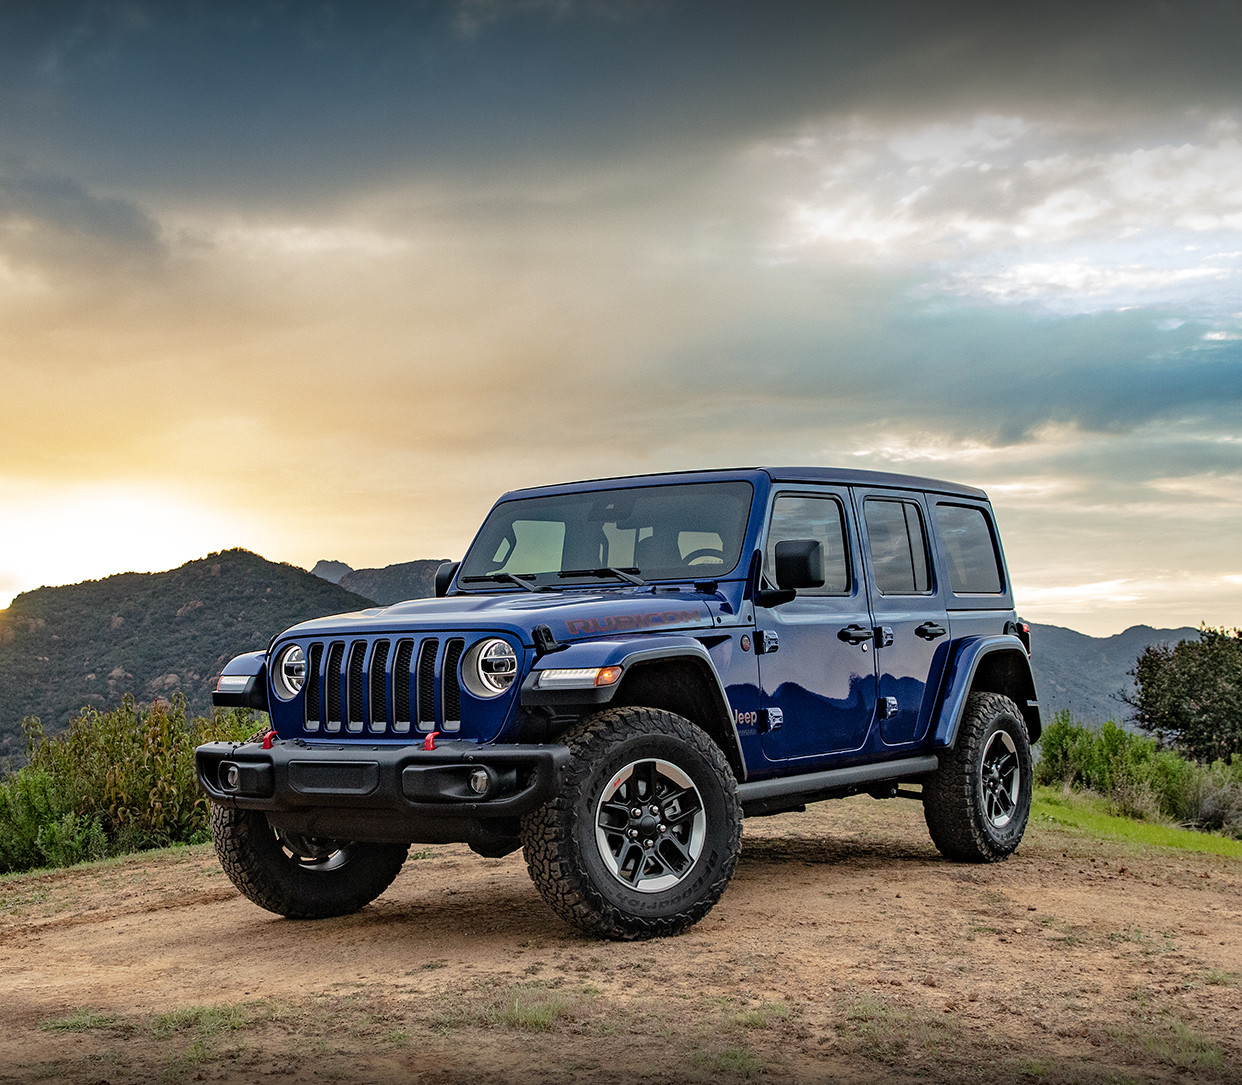 2019 Wrangler Unlimited Rubicon in Ocean Blue parked on hilltop, mountains behind.